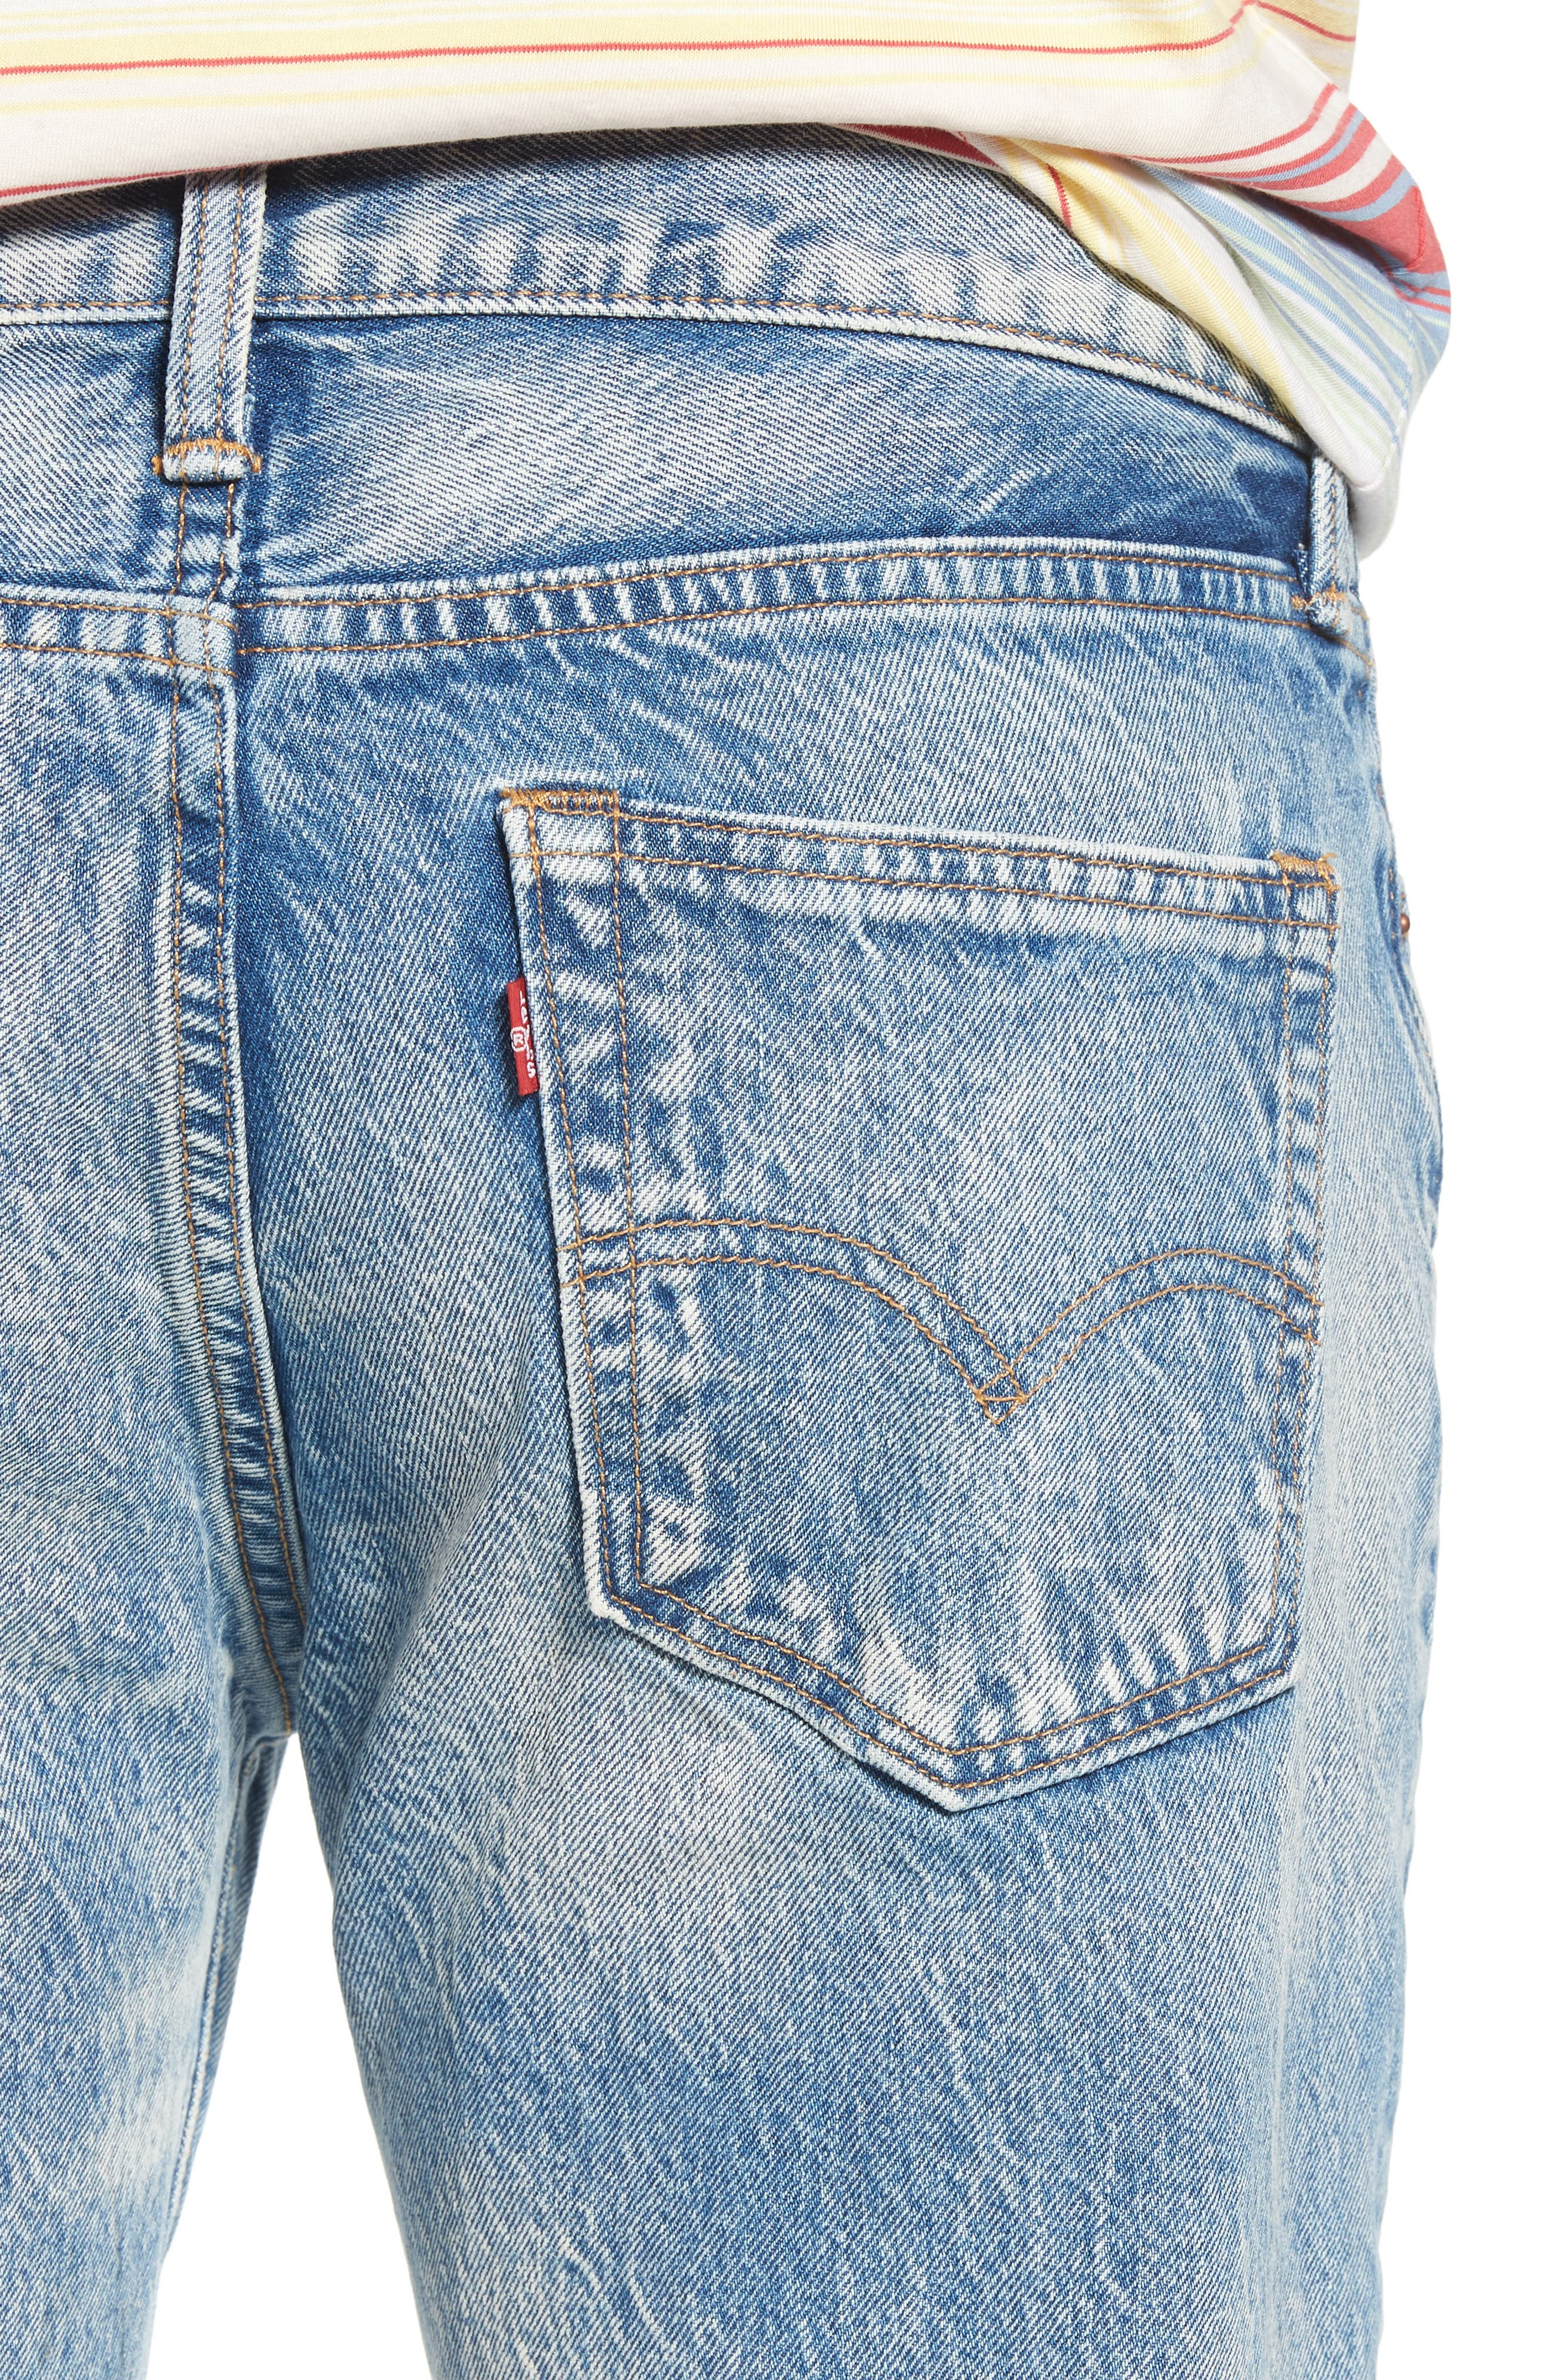 510<sup>™</sup> Skinny Jeans,                             Alternate thumbnail 4, color,                             Rolled Up Dollar